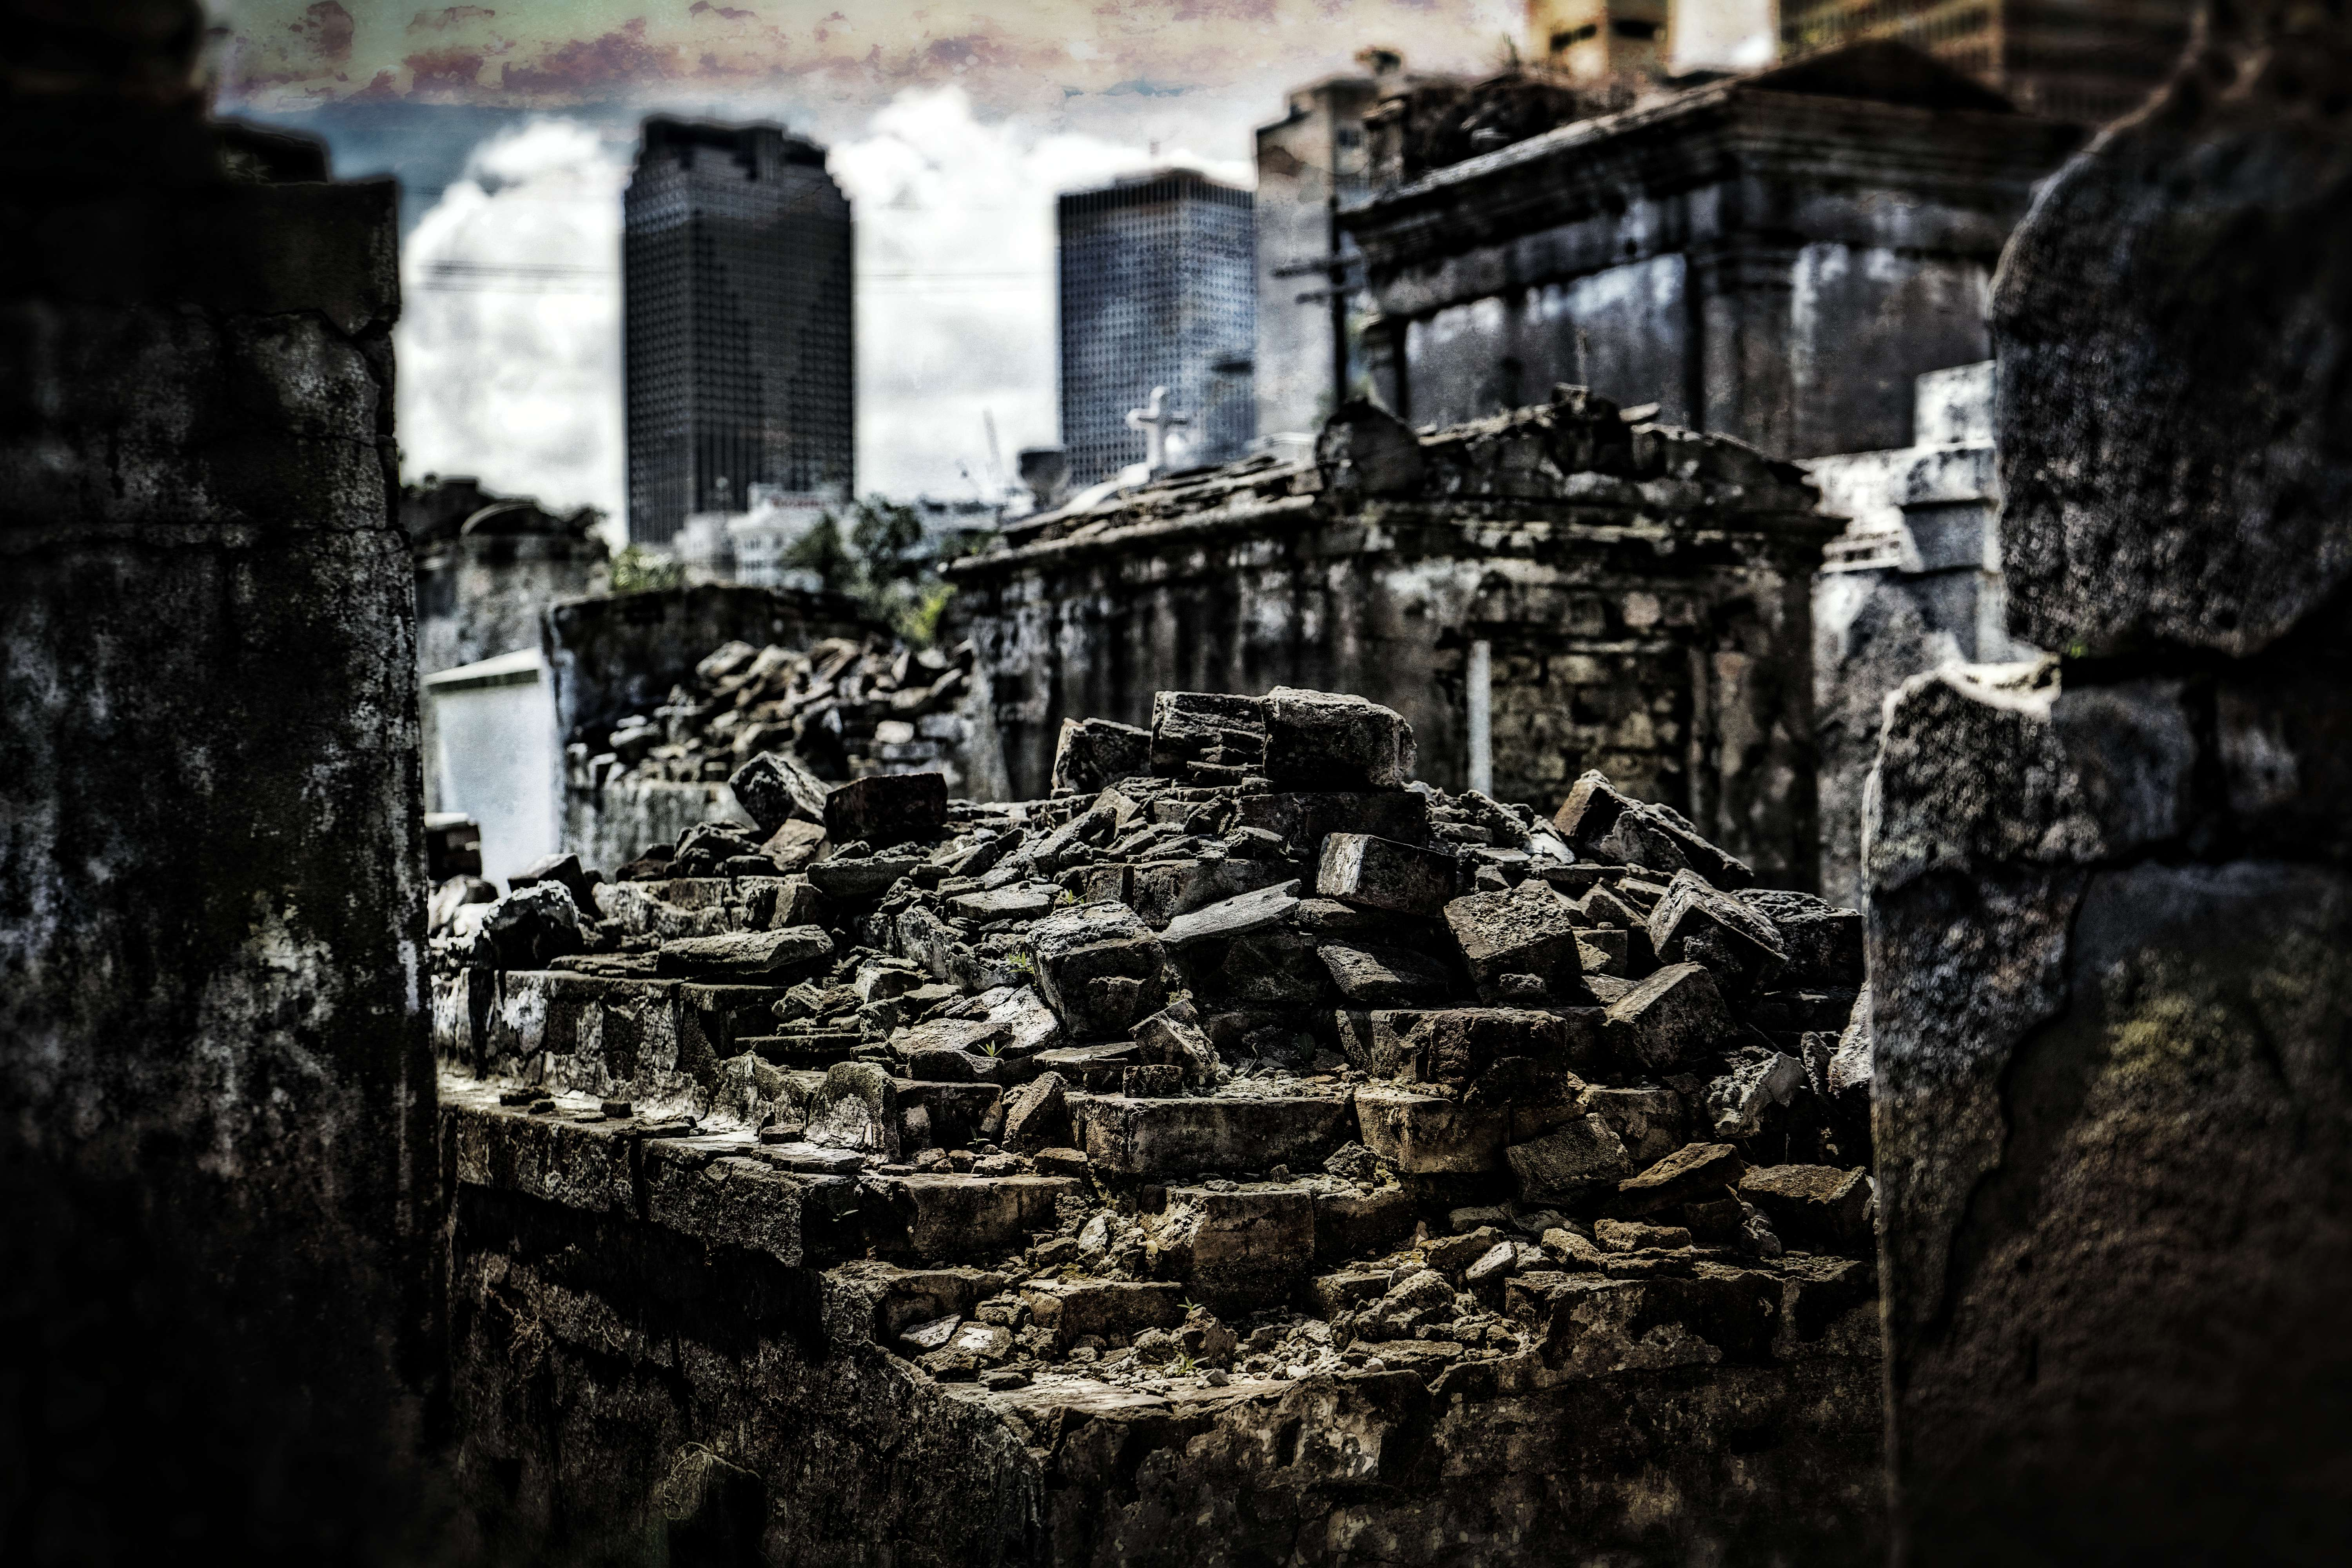 New Orleans from Lt. Louis Cemetery Number 2.